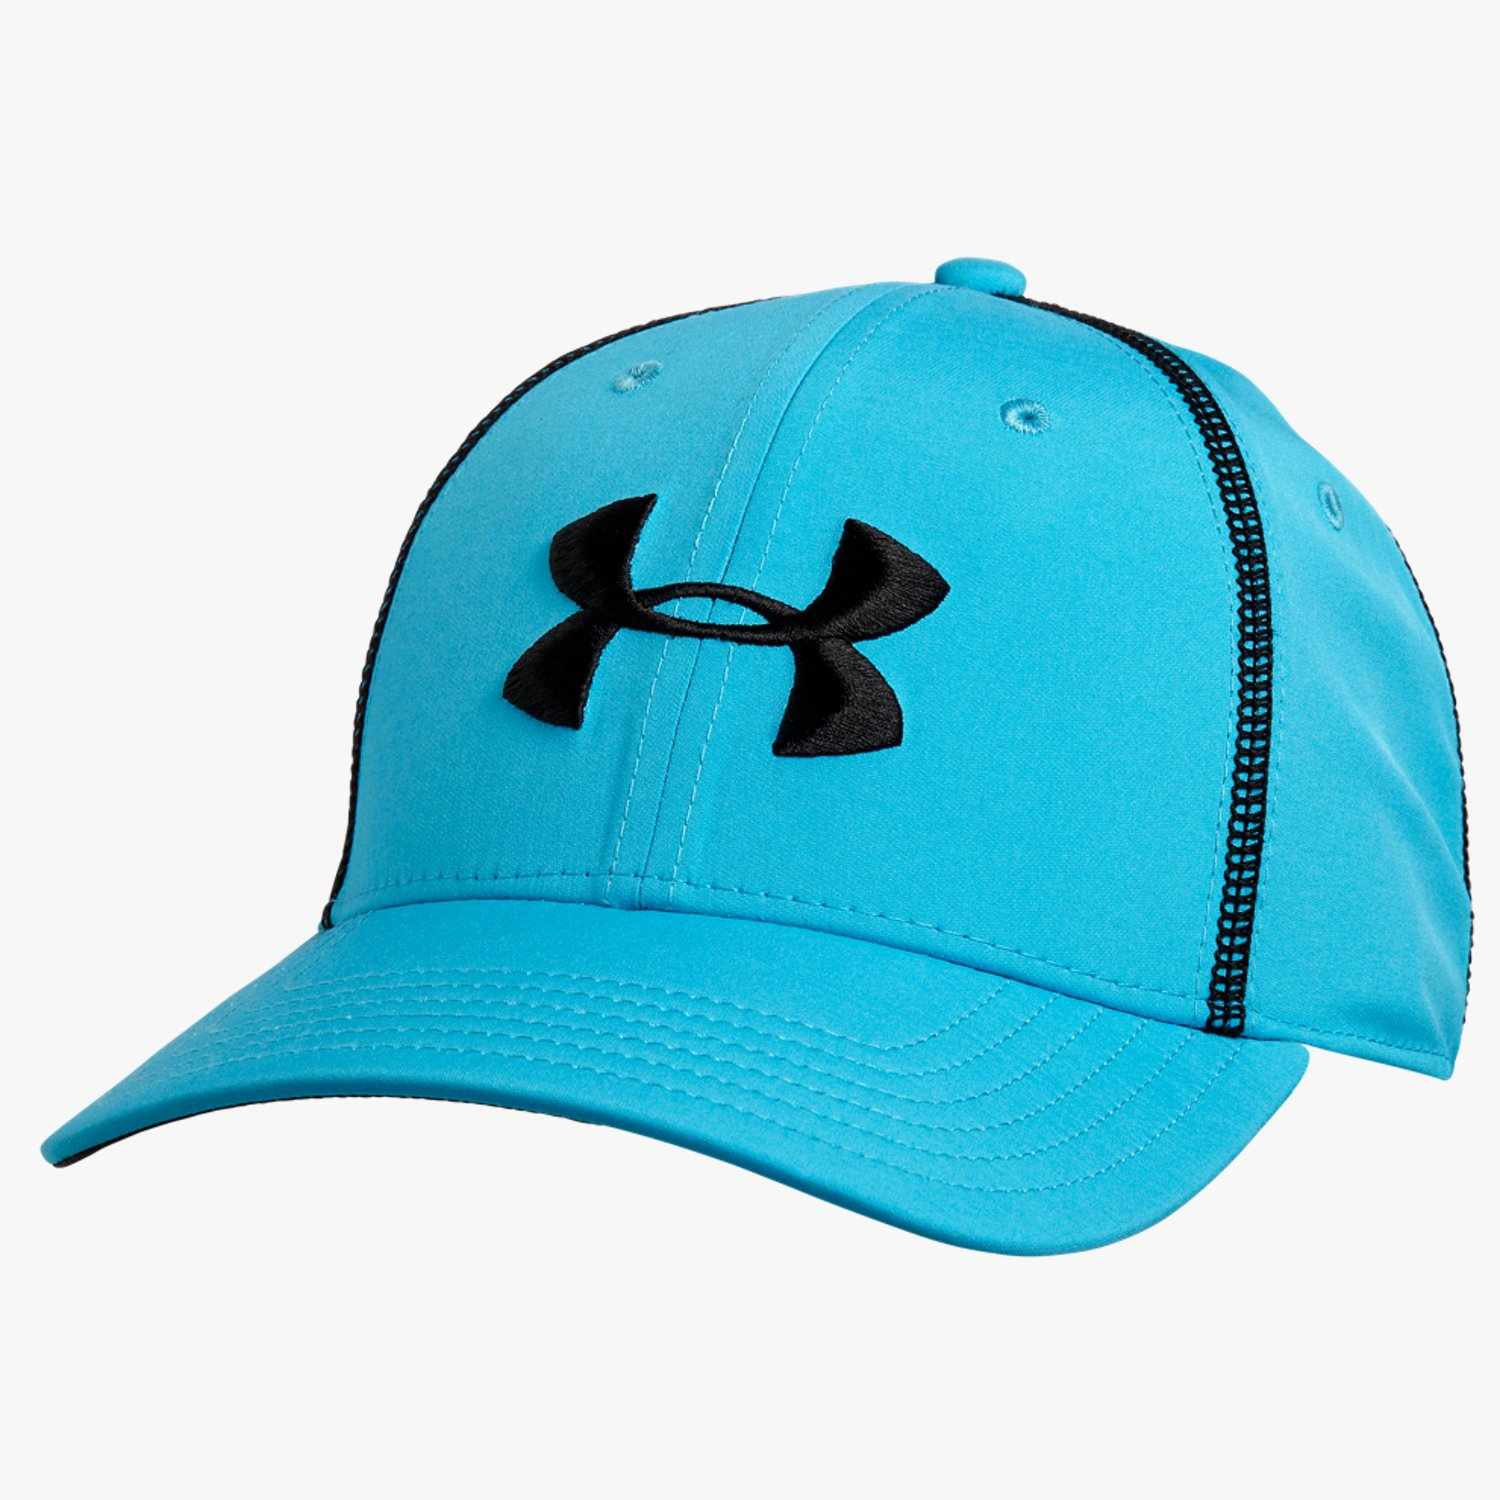 Under Armour UA Huddle Stretch Fit Cap Island Blue/Black-30